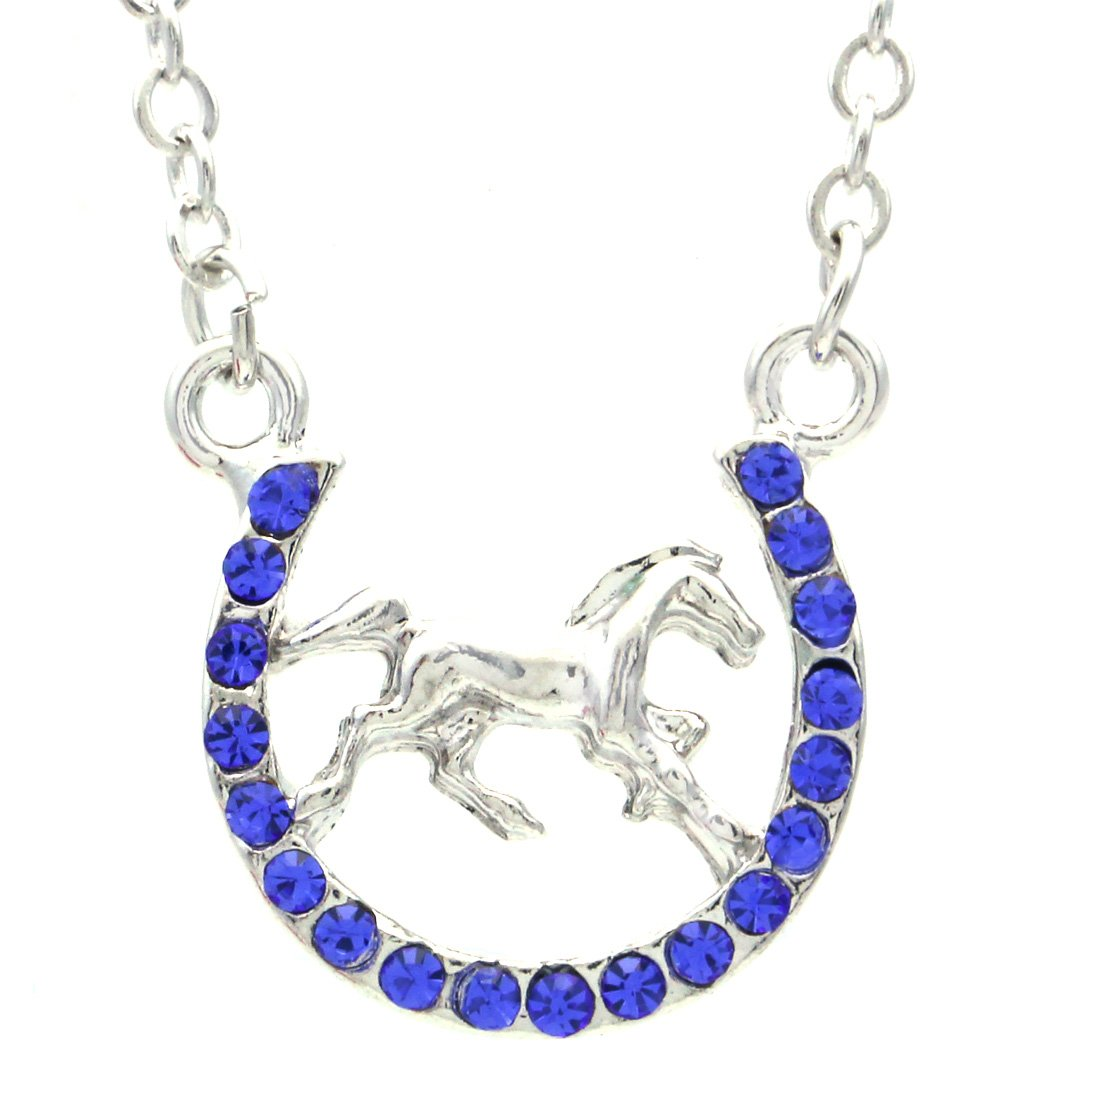 Soulbreezecollection Horse Mustang Pony Horseshoe Necklace Pendant Lucky Charm Western Cowboy Cowgirl